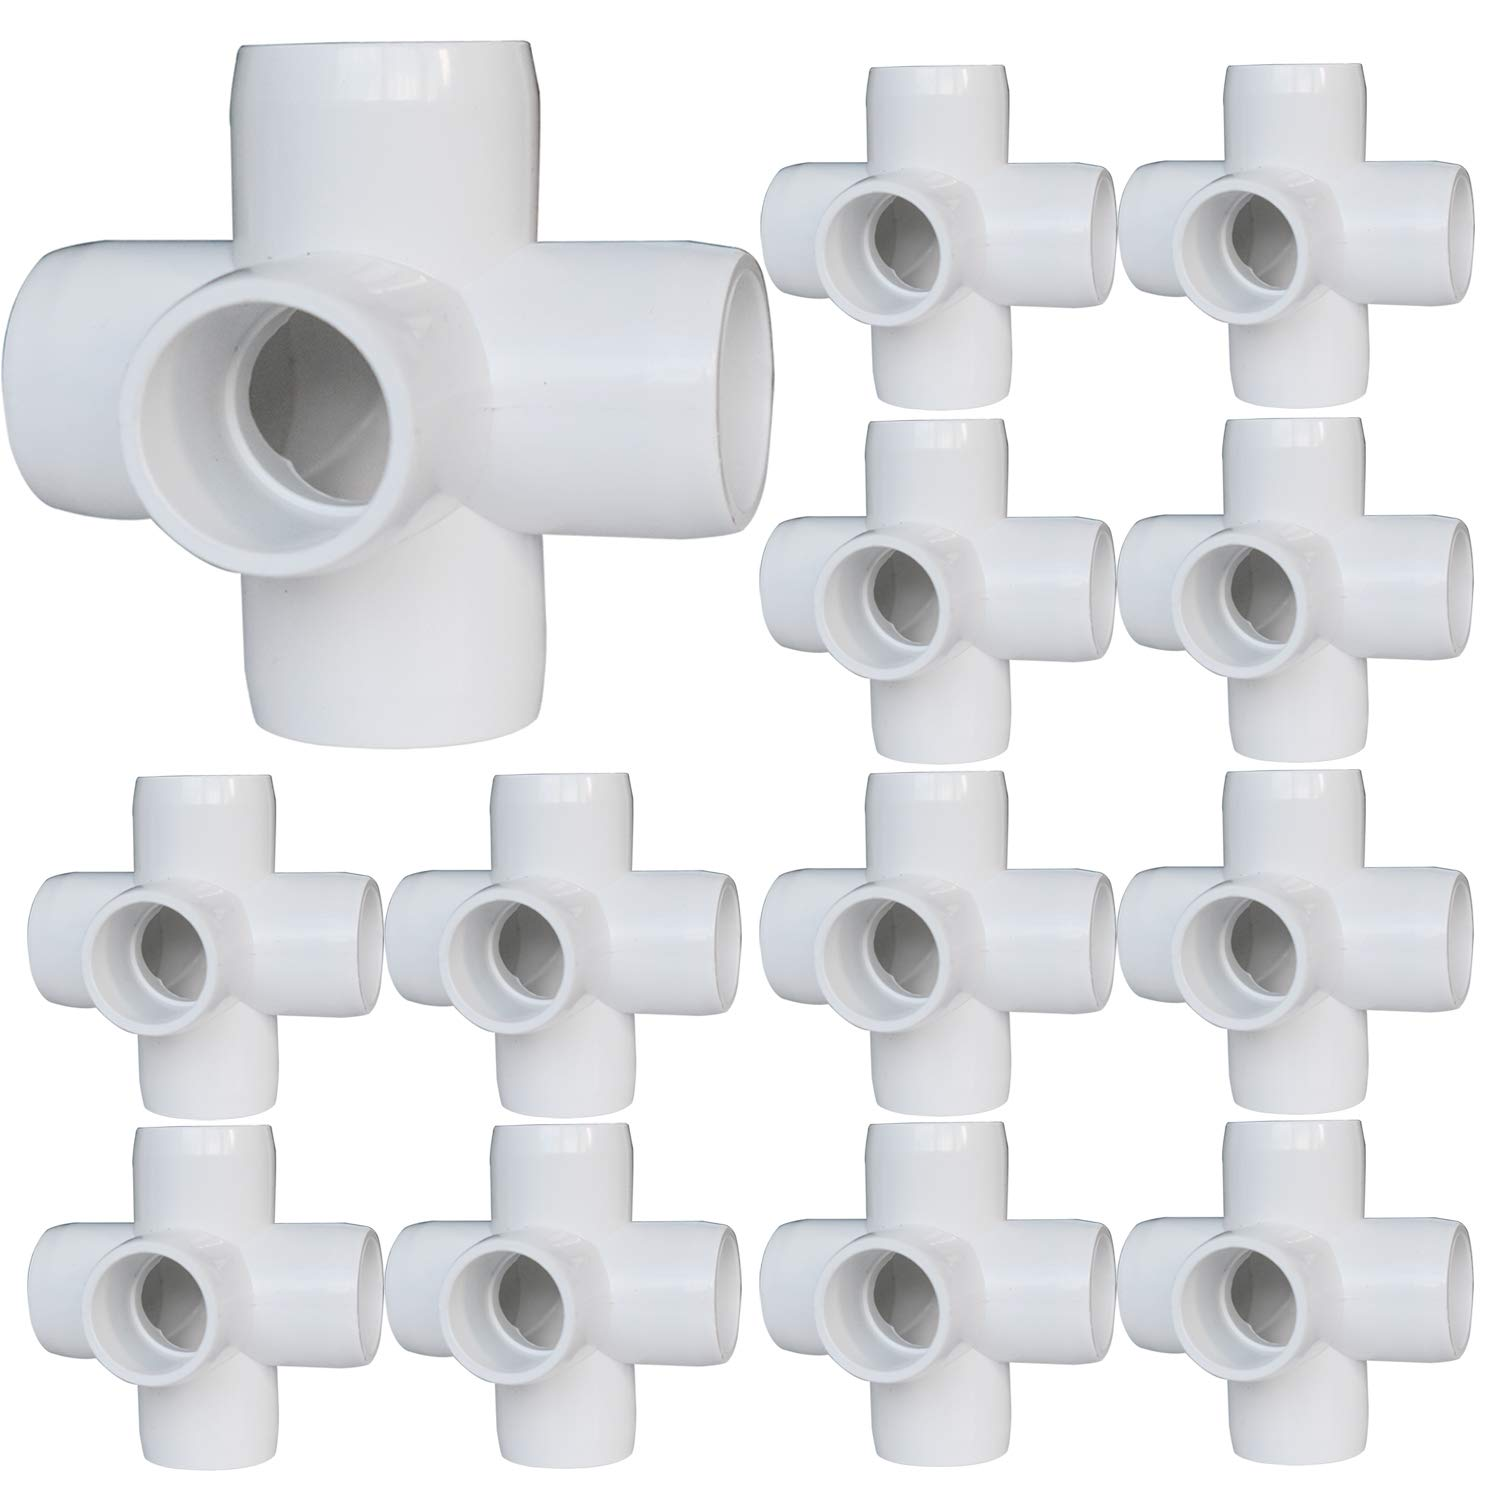 12Pack 5-Way Elbow PVC Fittings, 1/2Inch Furniture PVC Fittings, 5 Way Side Outlet Tees, PVC Corner Fittings for Building PVC Furniture Greenhouse Shed Pipe Fittings Tent Connection